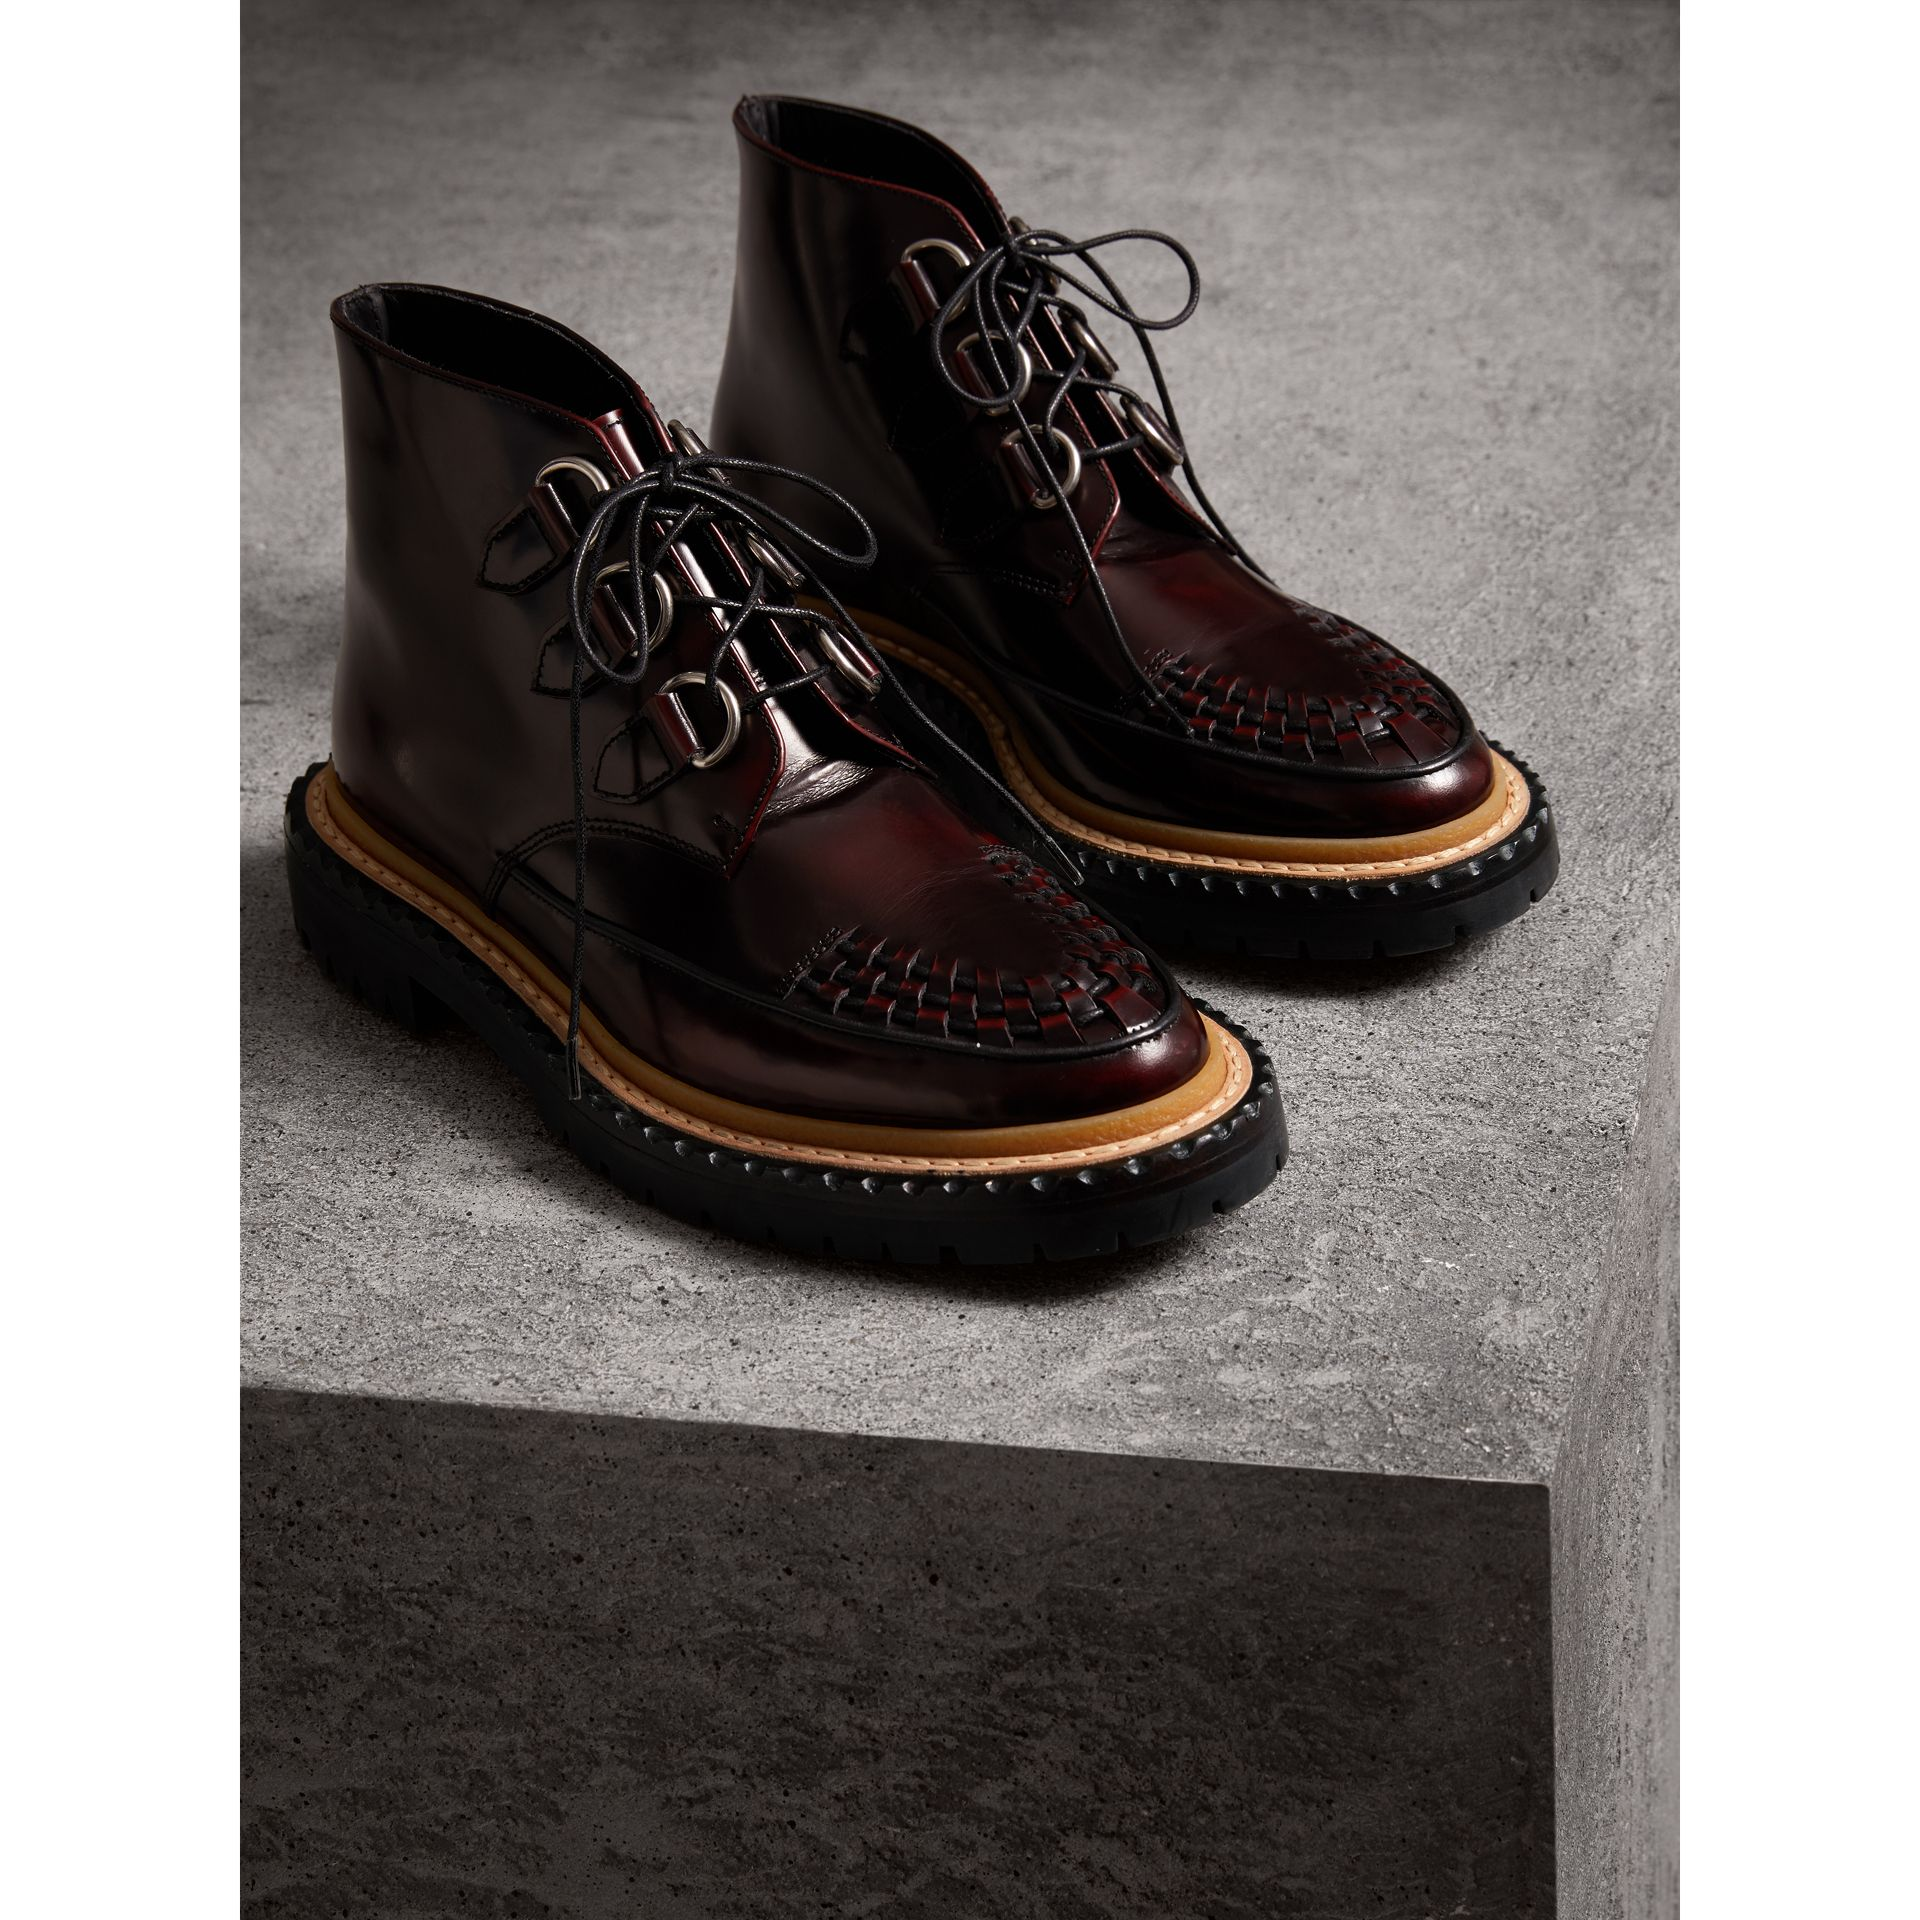 Woven-toe Polished Leather Ankle Boots in Bordeaux - Women | Burberry Singapore - gallery image 3